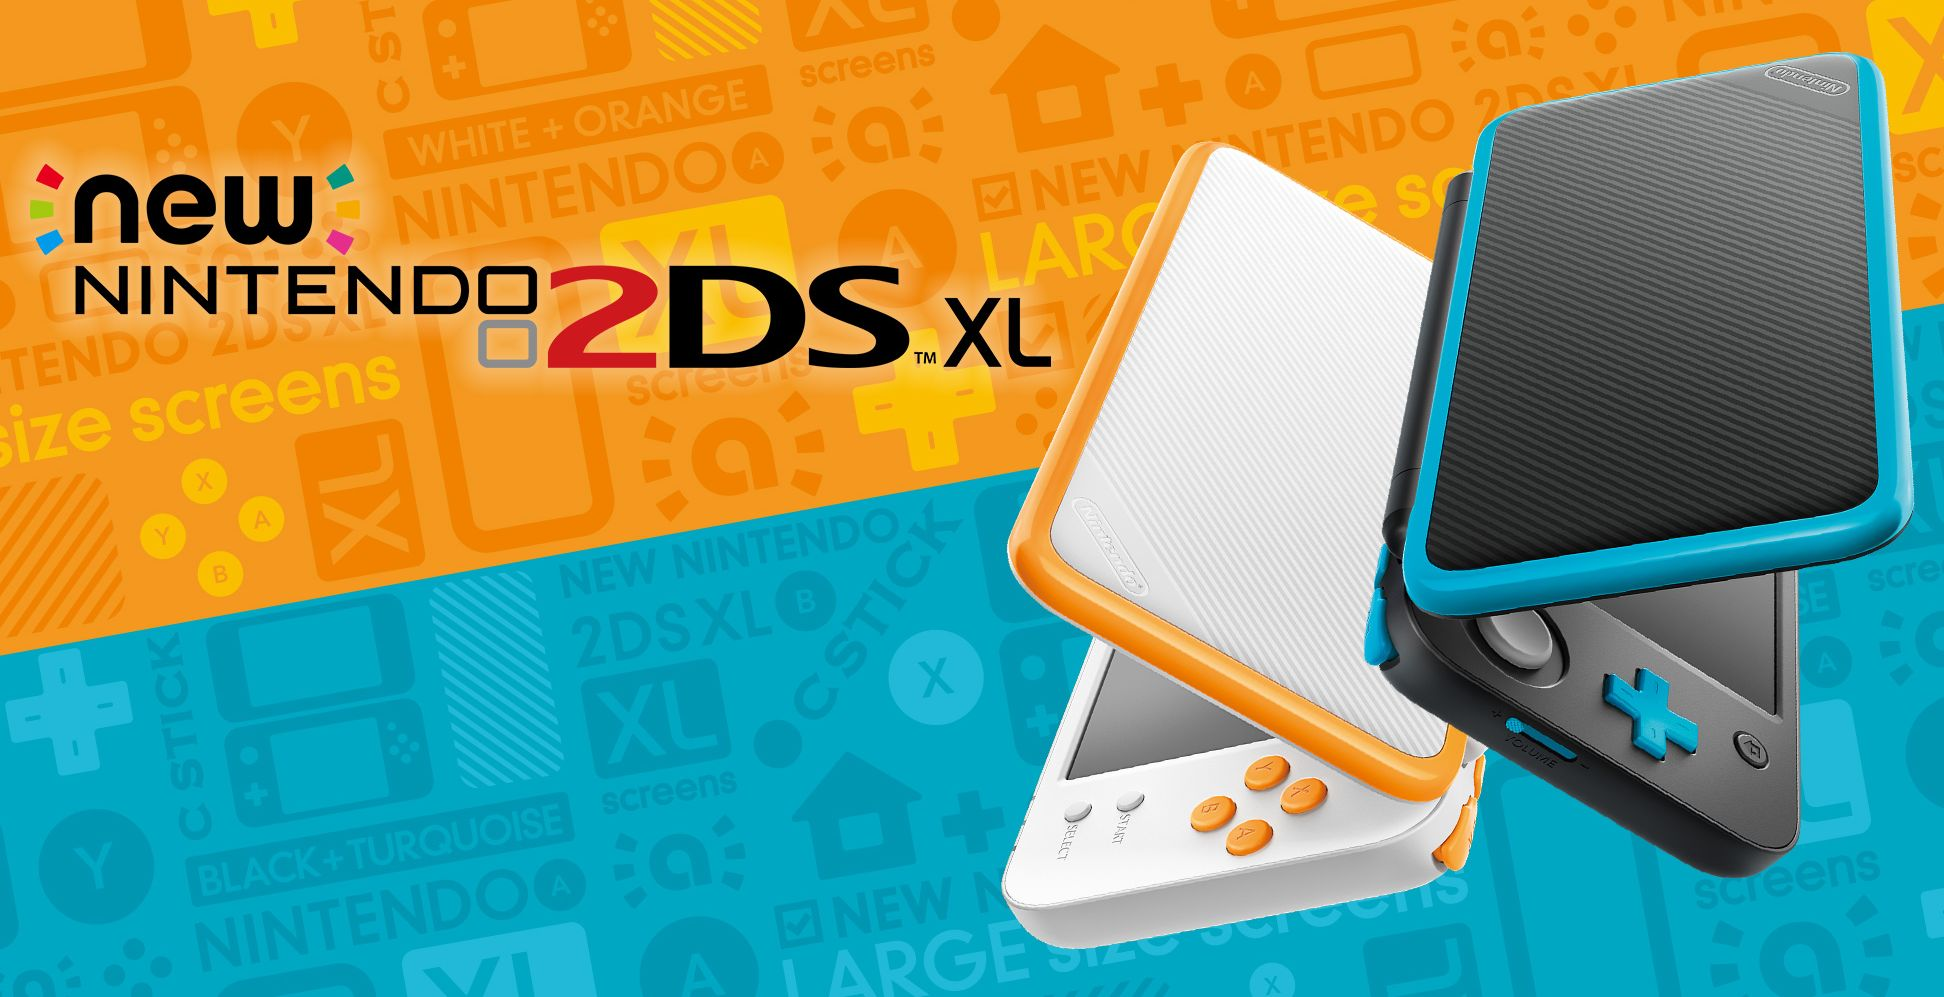 An overview of the game console, New Nintendo 2DS XL